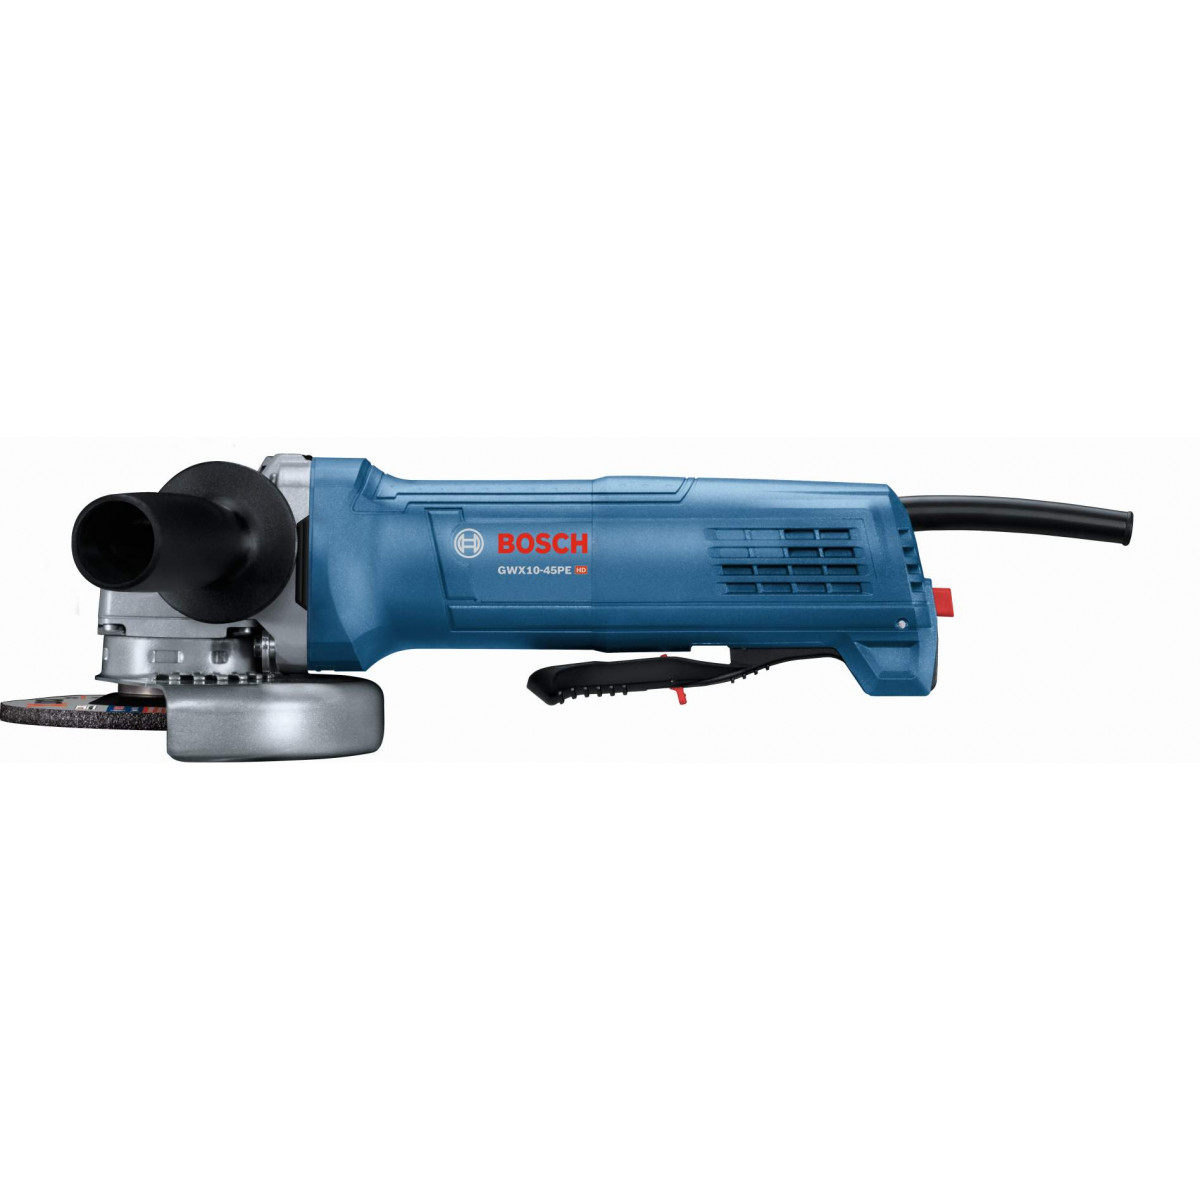 Bosch GWX10-45PE 4-1/2 In. X-LOCK Ergonomic Angle Grinder with Paddle Switch